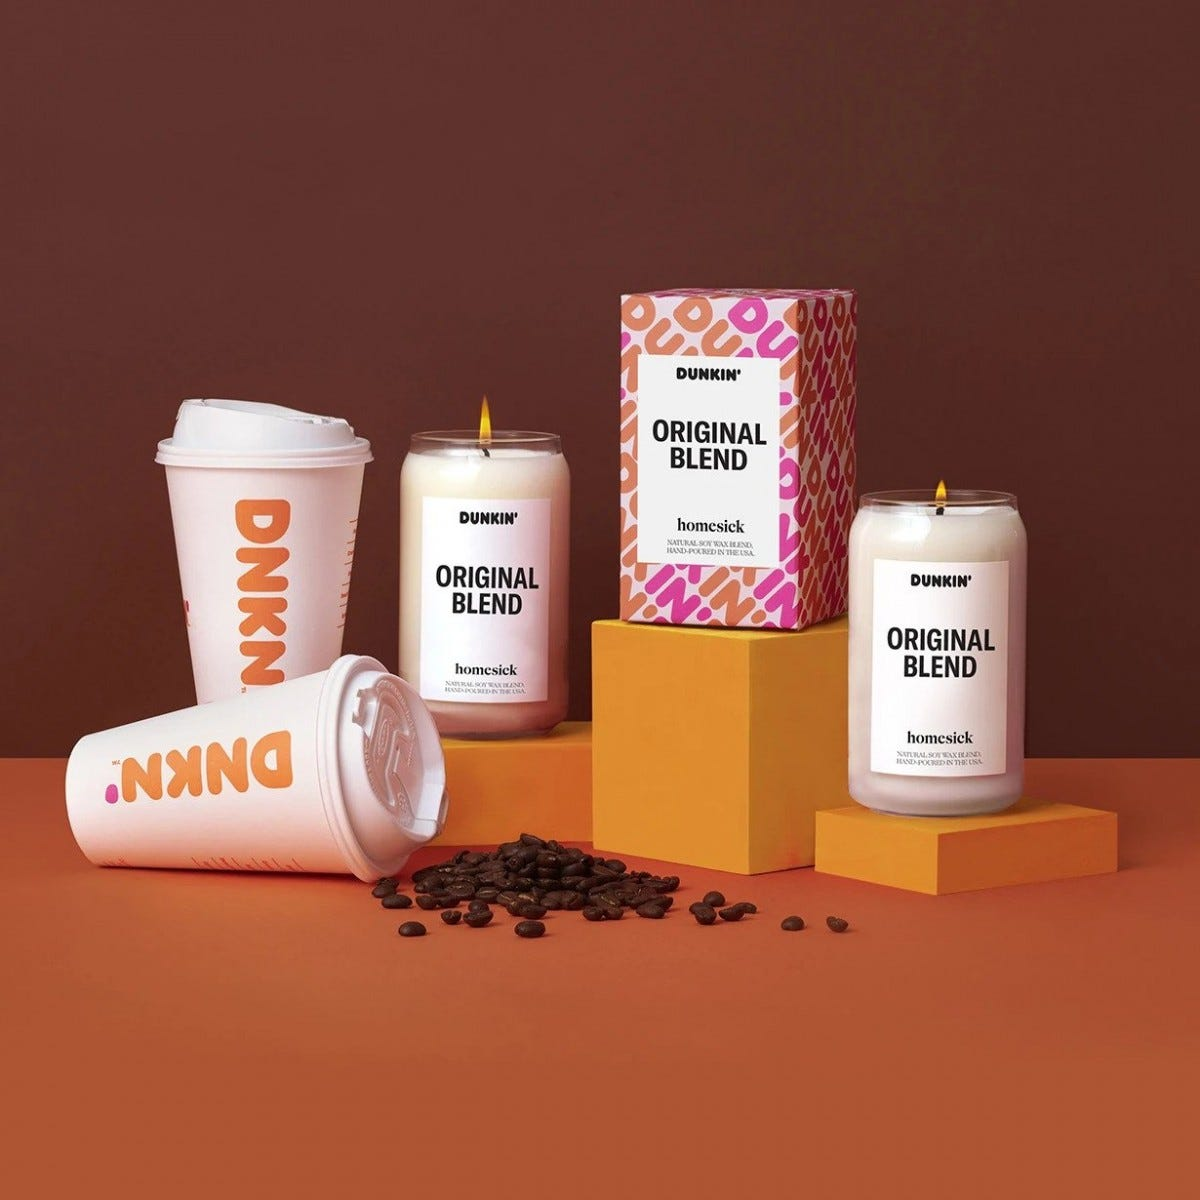 A collection of Dunkin' candles sit arranged among cups and coffee beans.